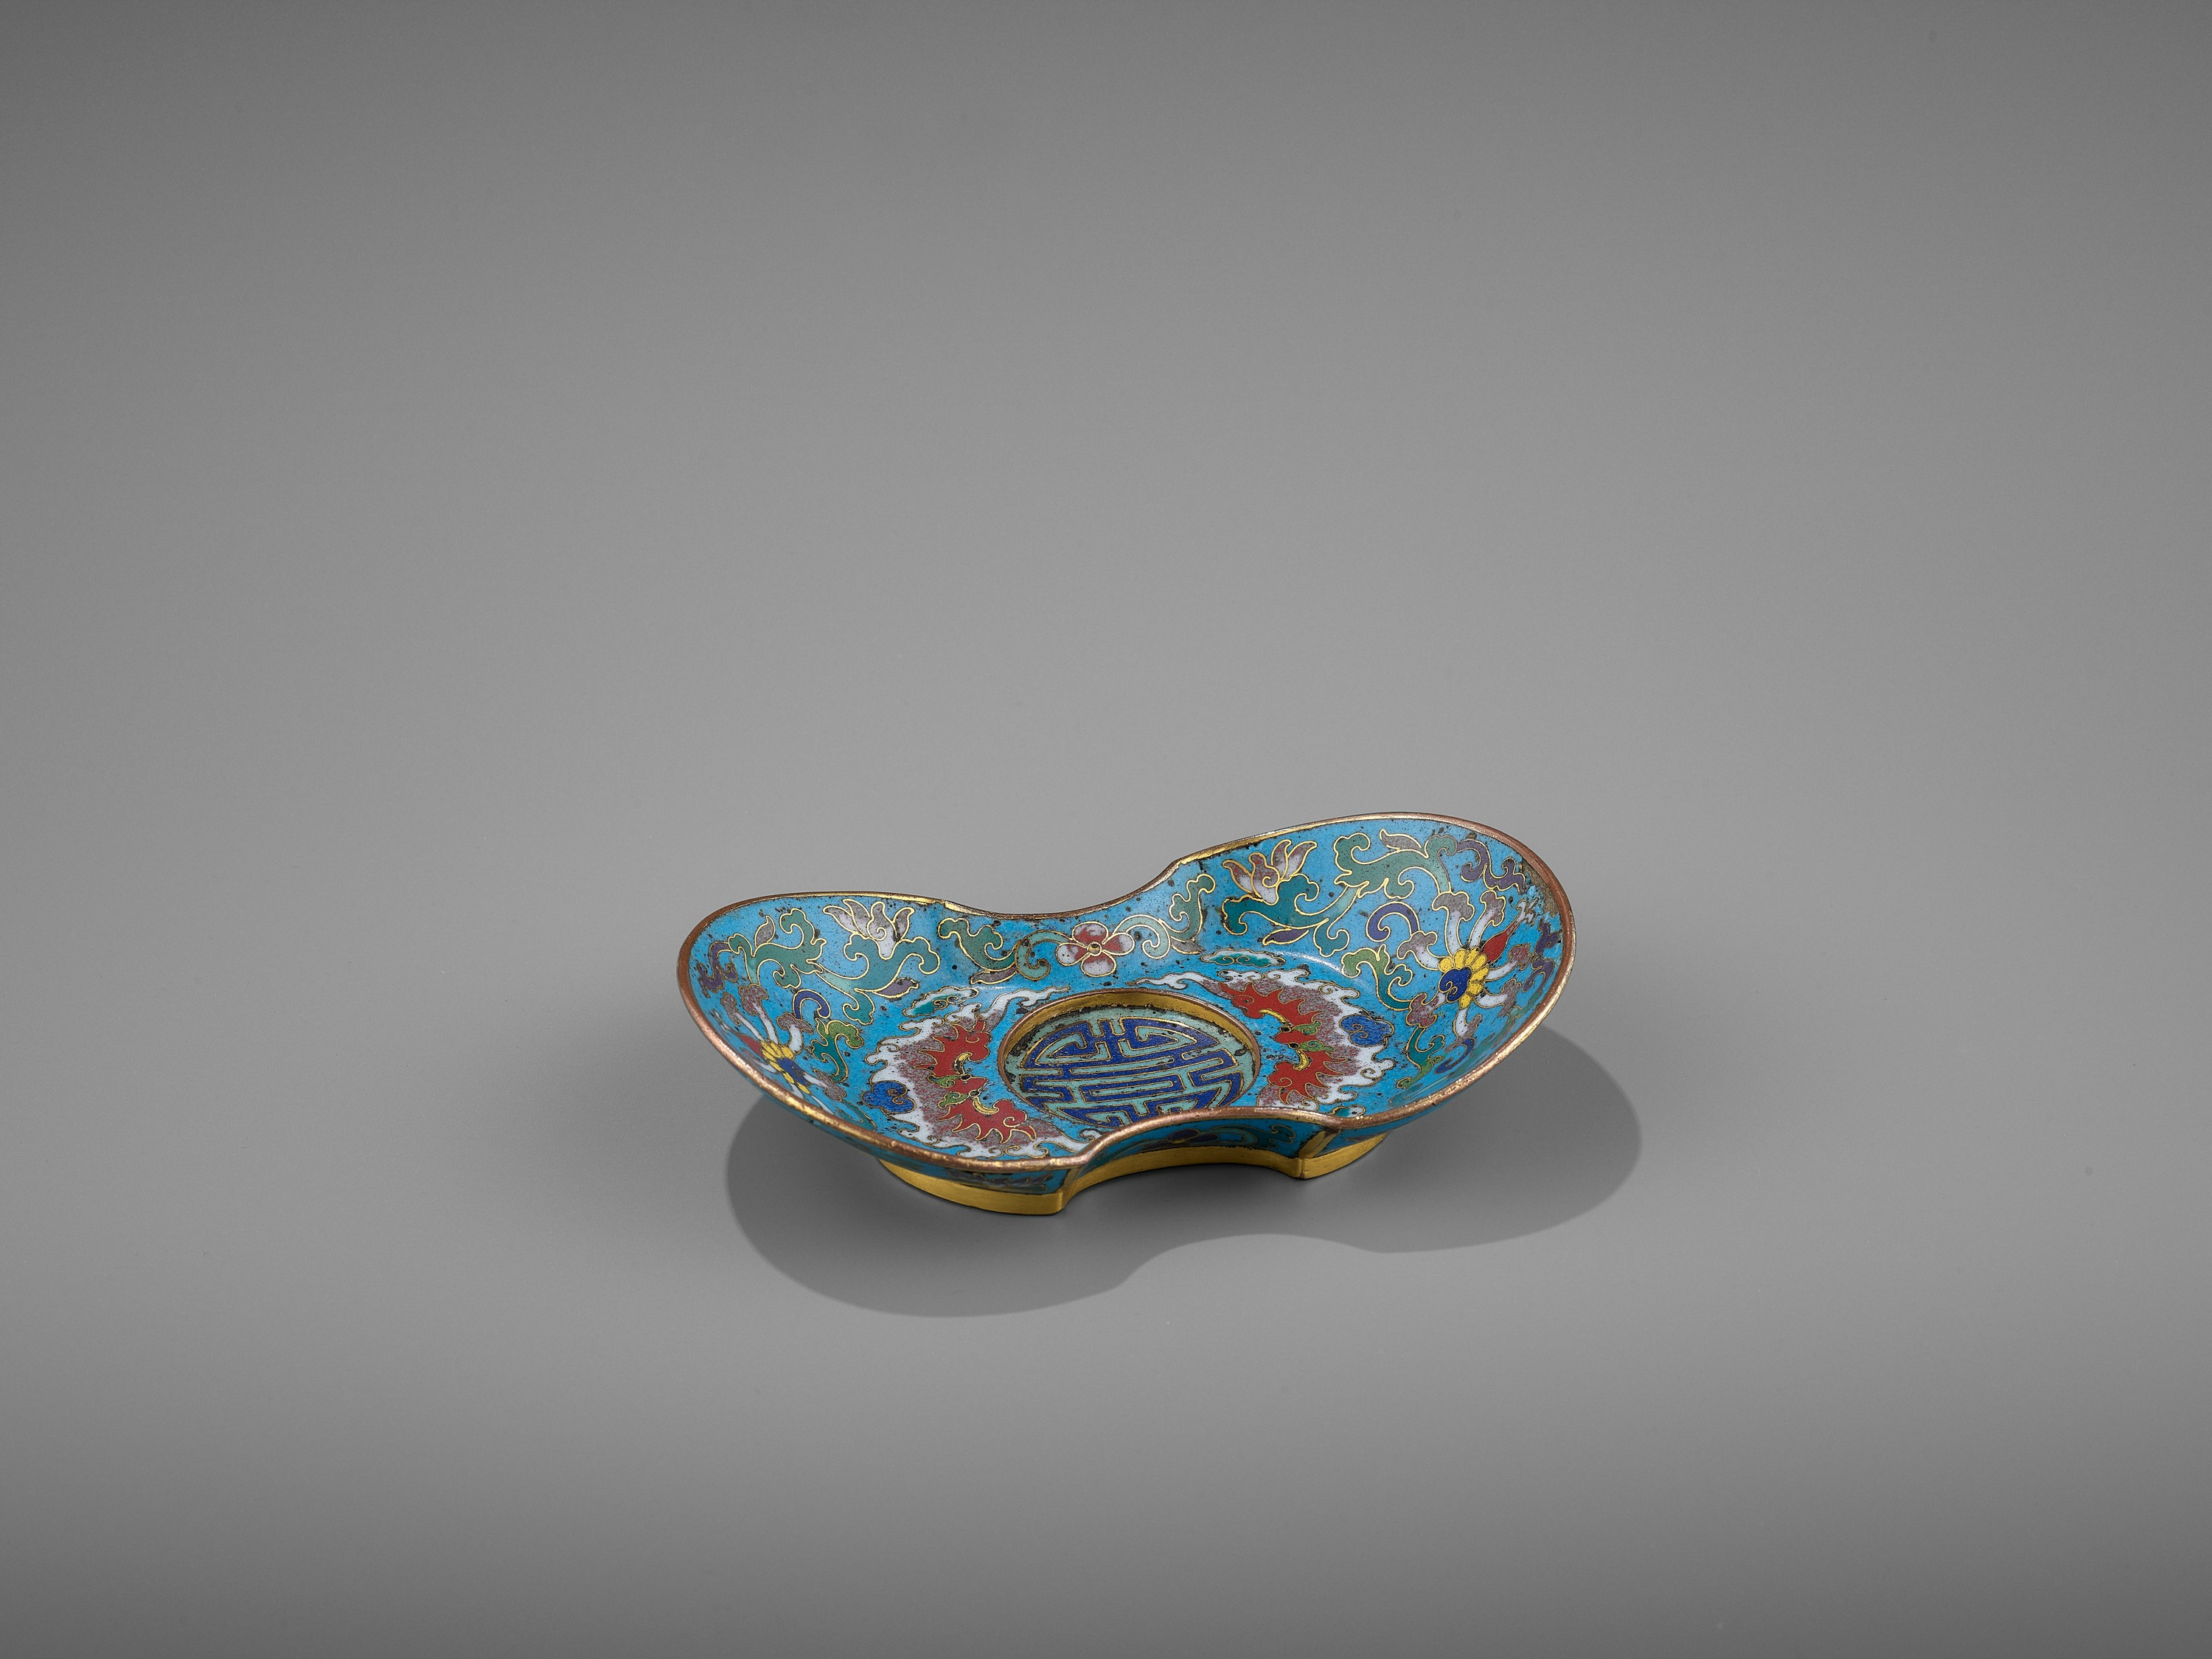 A CLOISONNE AND GILT-BRONZE 'DOUBLE HAPPINESS' CUP STAND, QIANLONG - Image 9 of 10